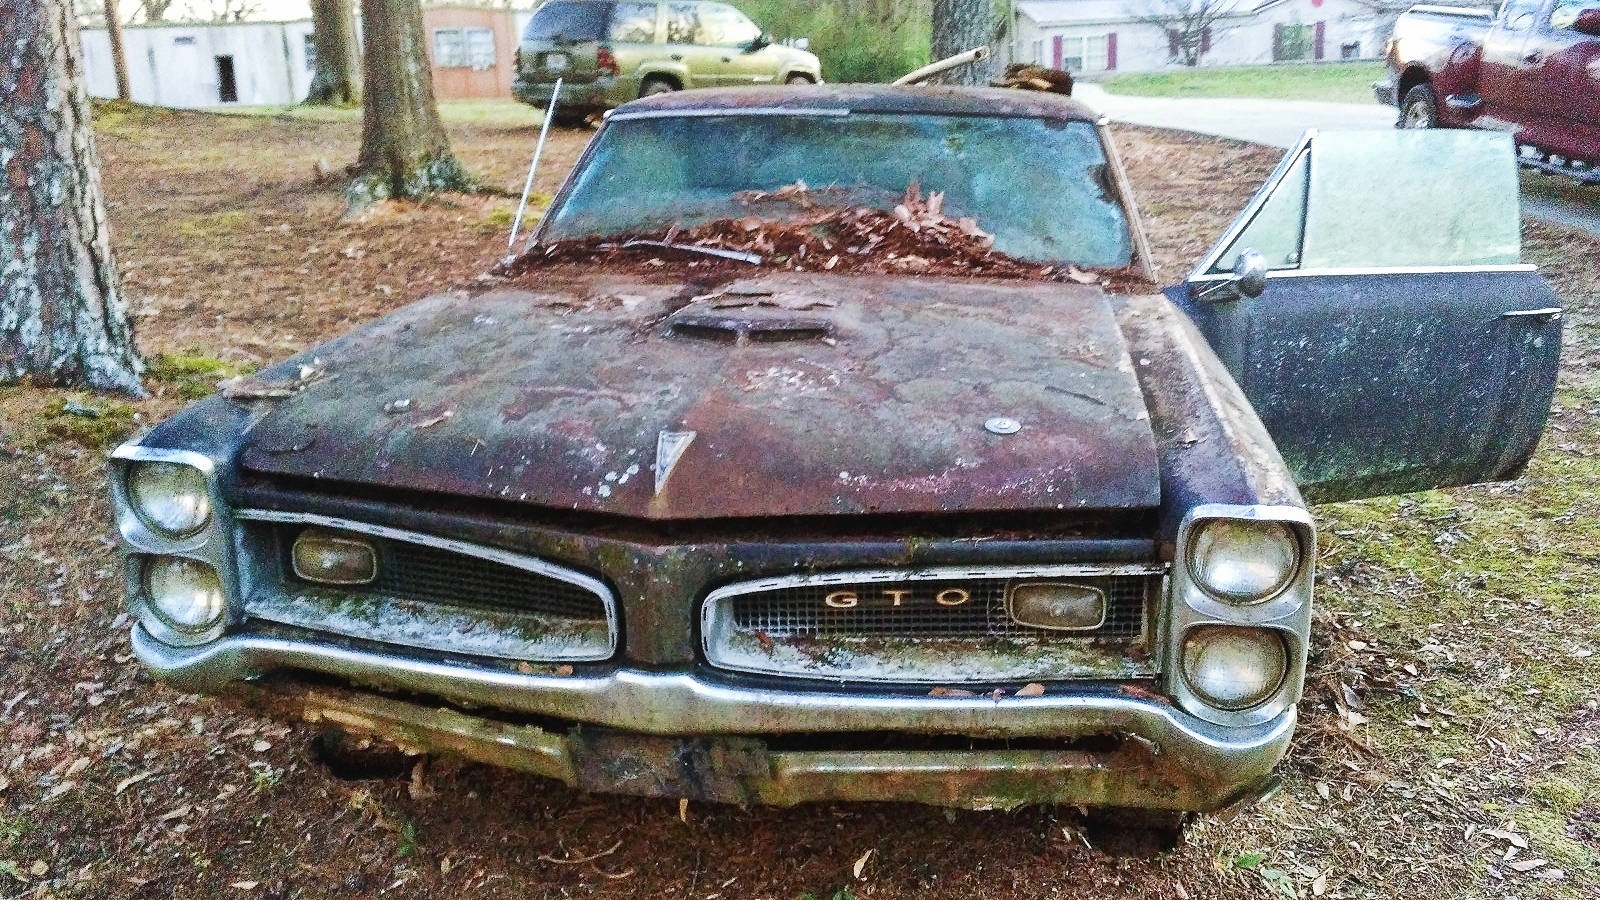 Exclusive 1966 Pontiac Gto For 1 500